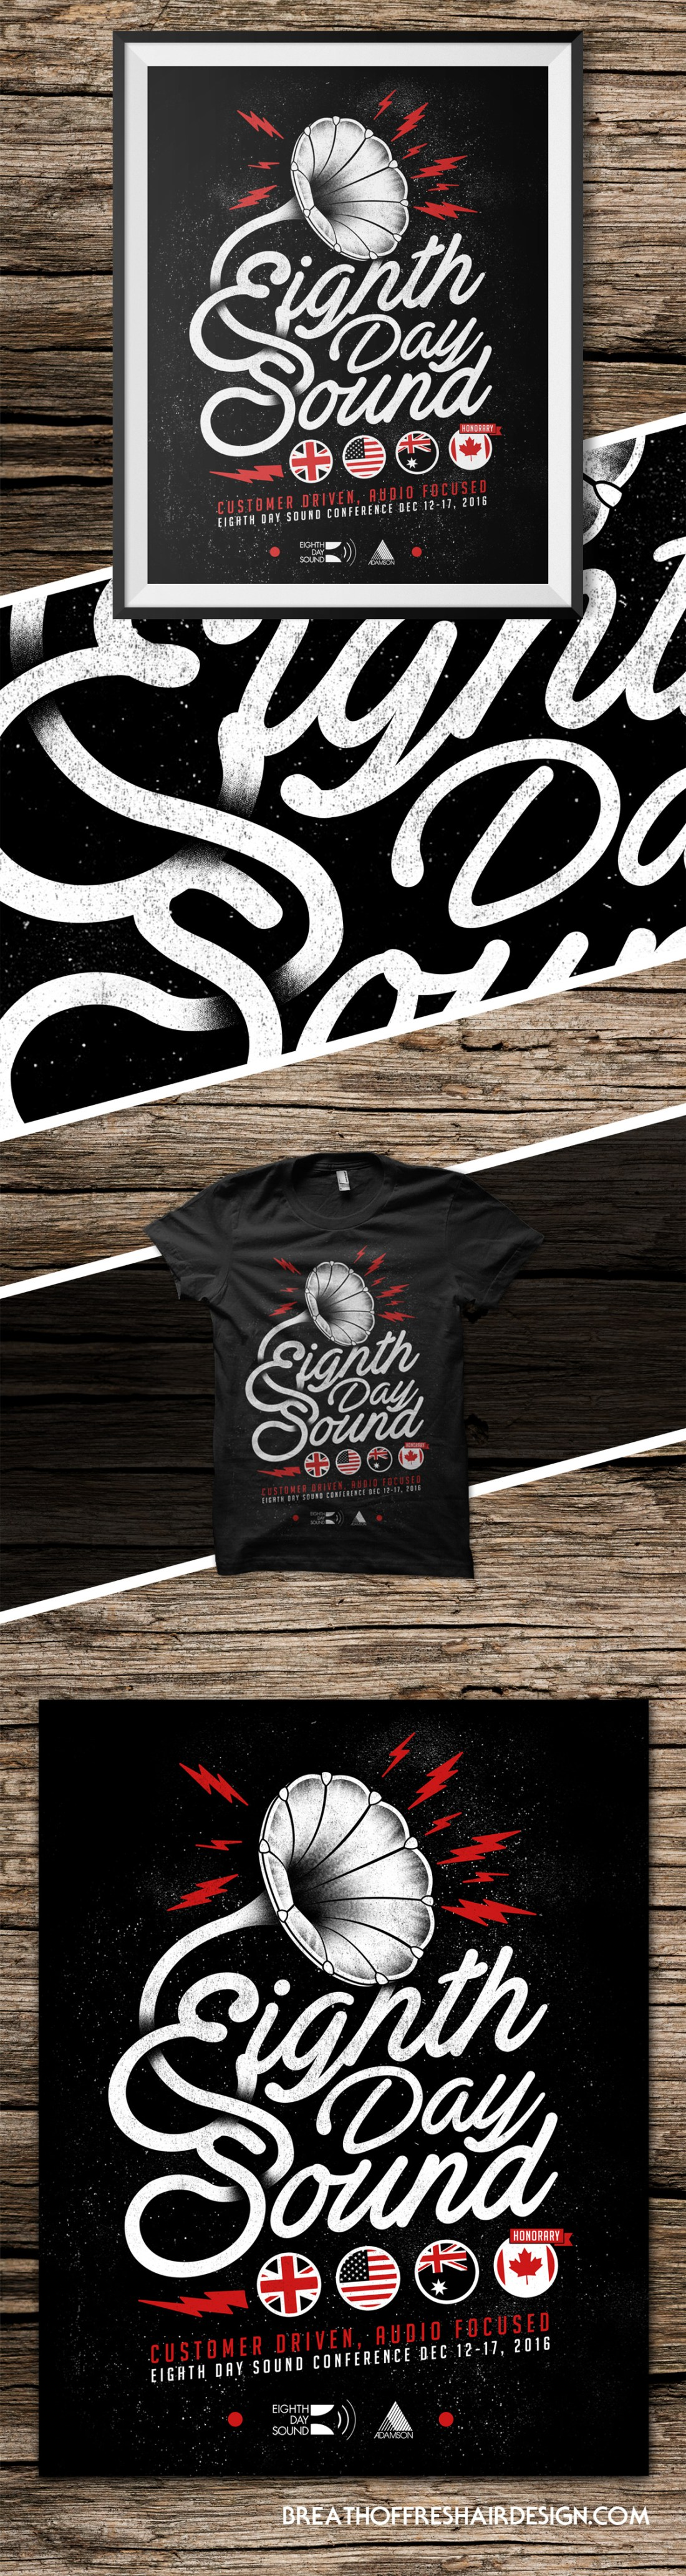 8th Day Sound, Tshirt Design, Illustration, Touring, Poster, Words, Sound, TExt, Font, Design, Handdrawn Font